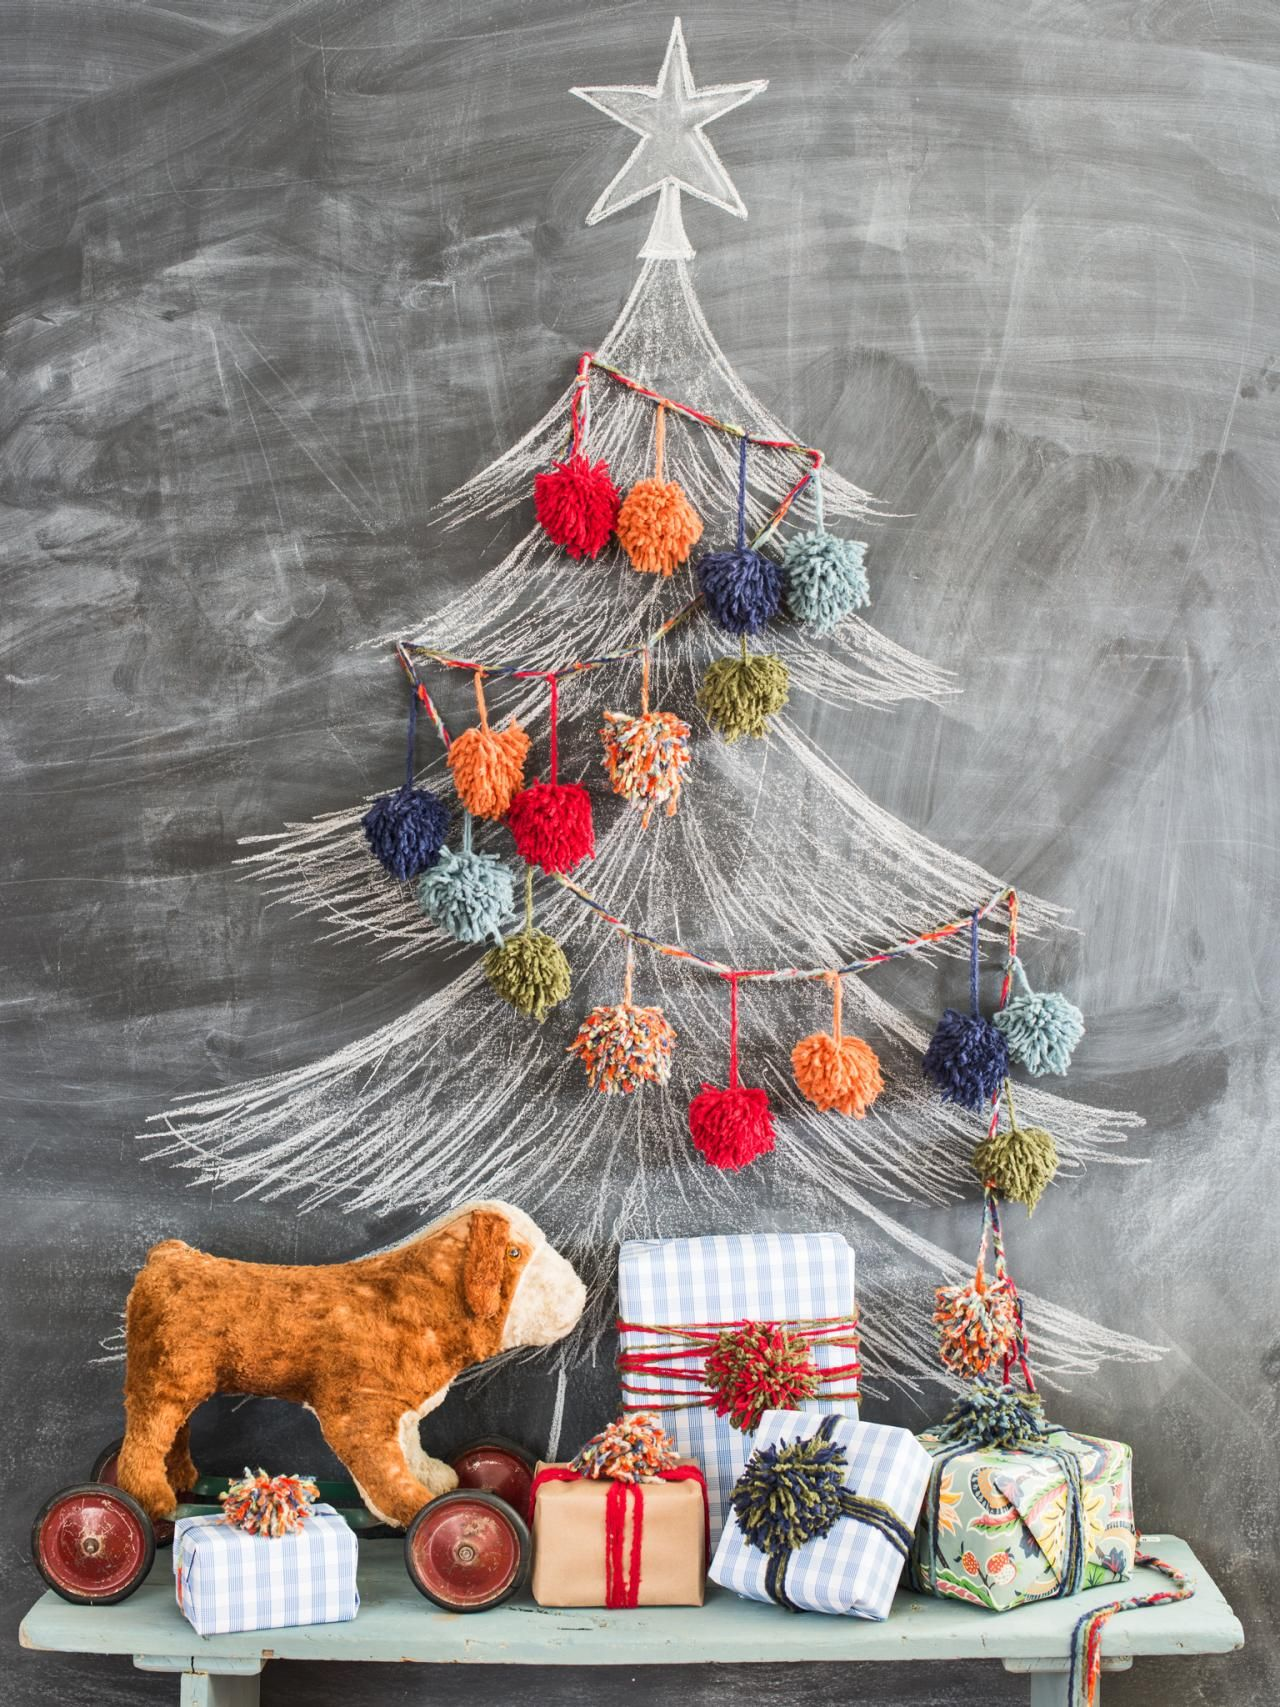 11 Videos to Watch for Fun Holiday Decor Ideas